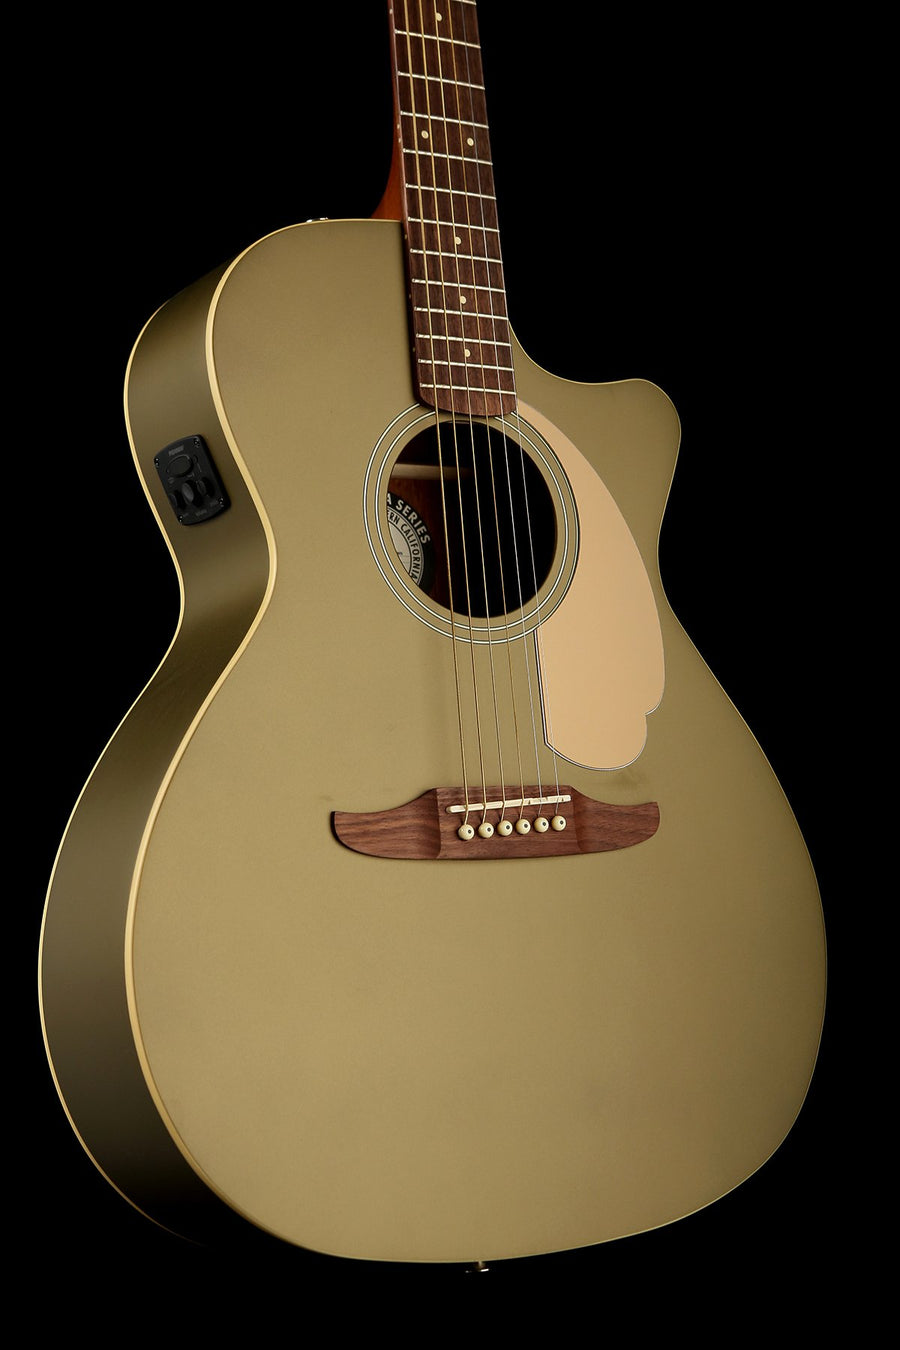 Fender Newporter Player 'Olive Satin' Acoustic Electric Guitar